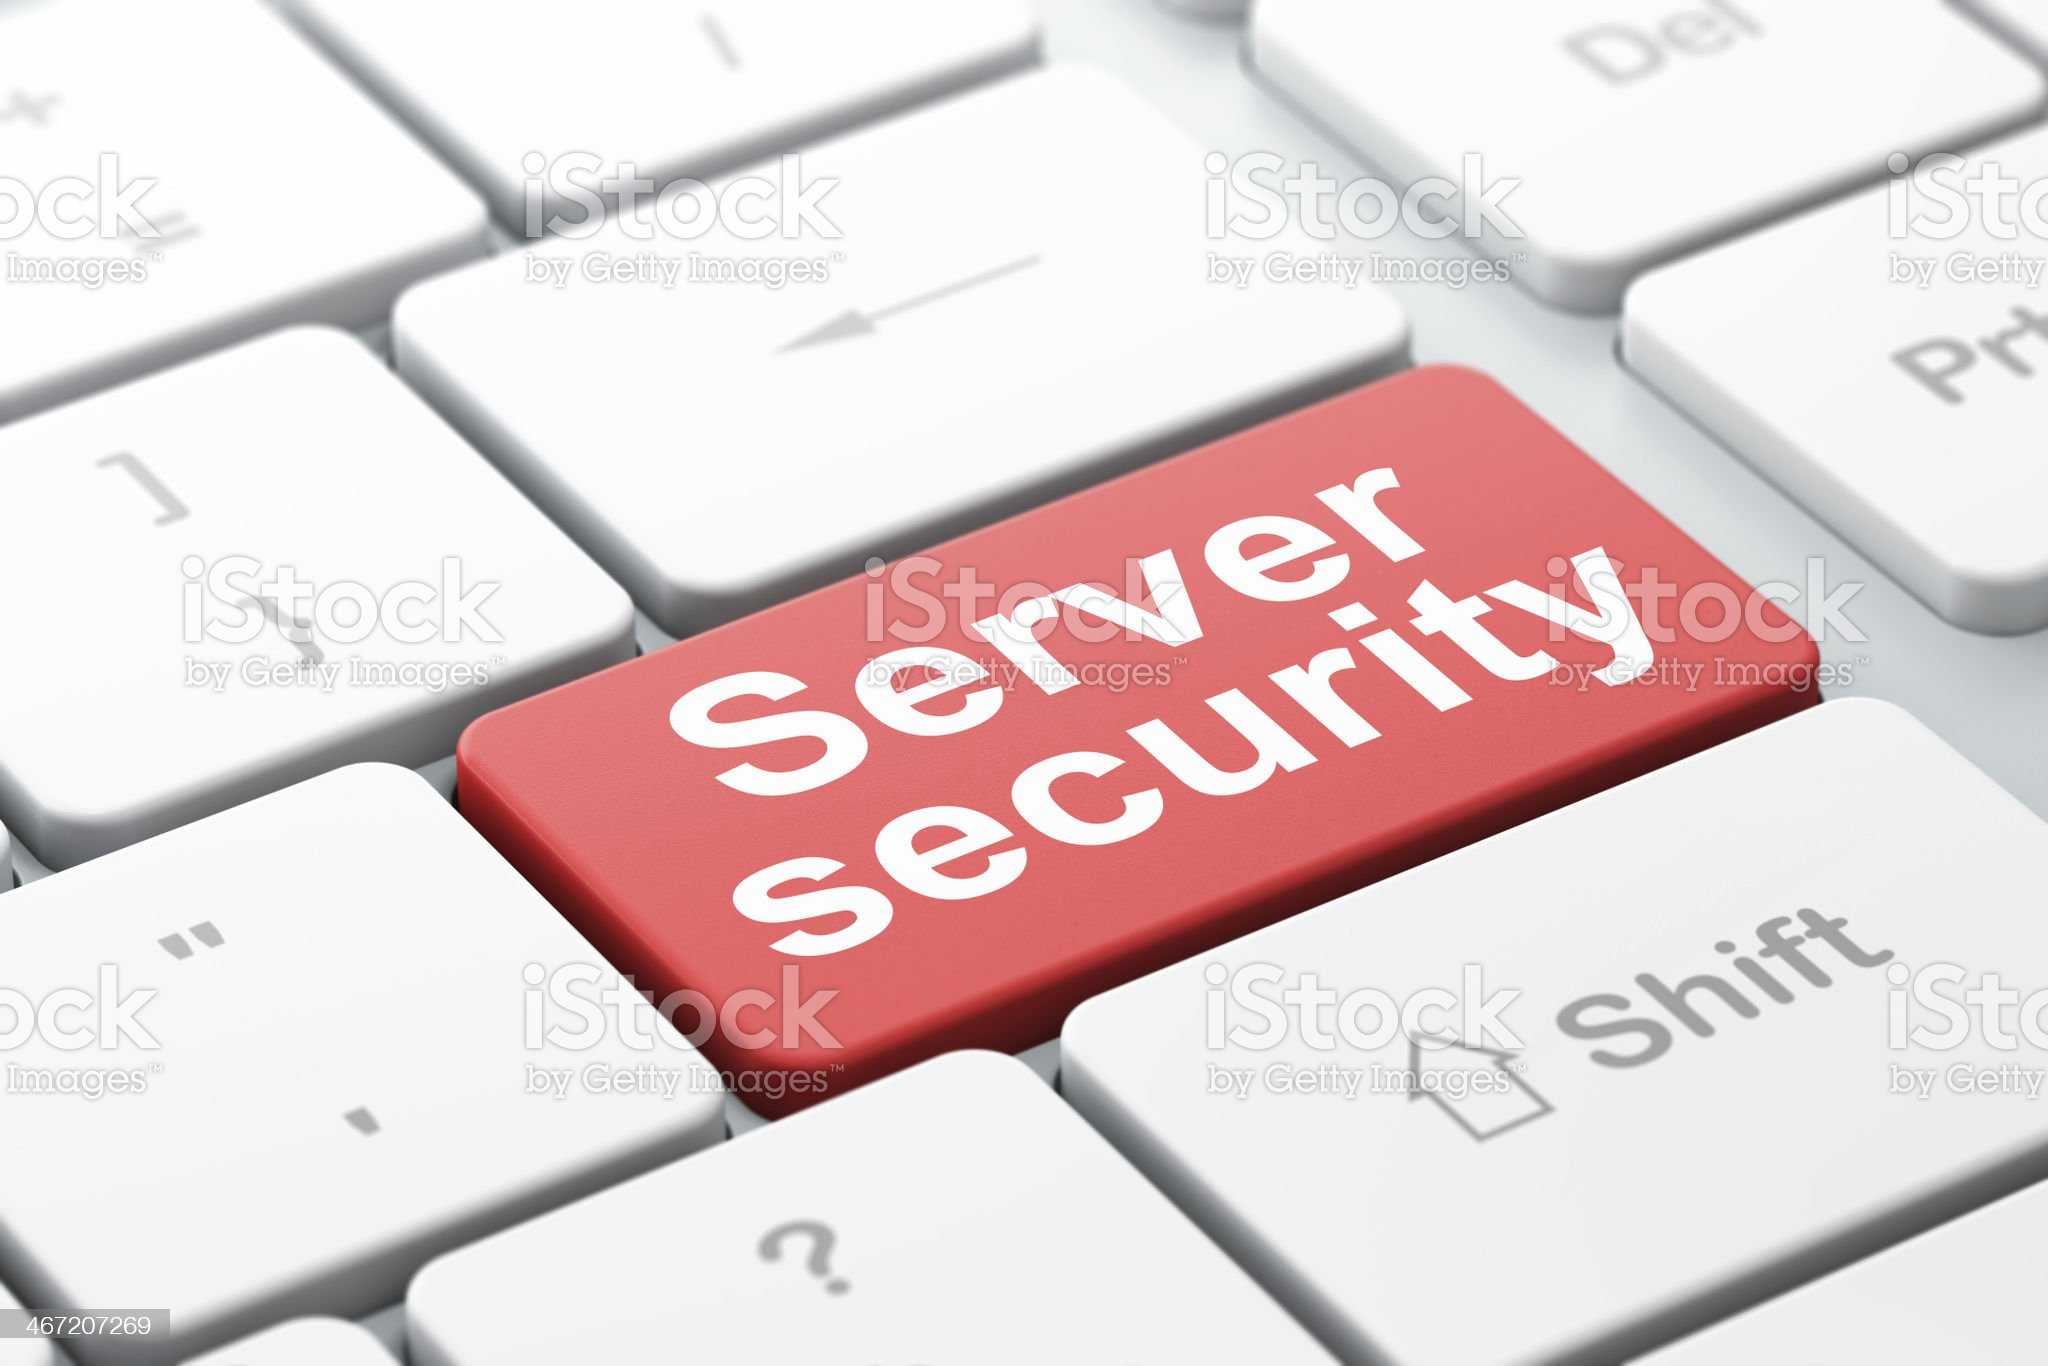 Privacy concept: Server Security on computer keyboard background royalty-free stock photo